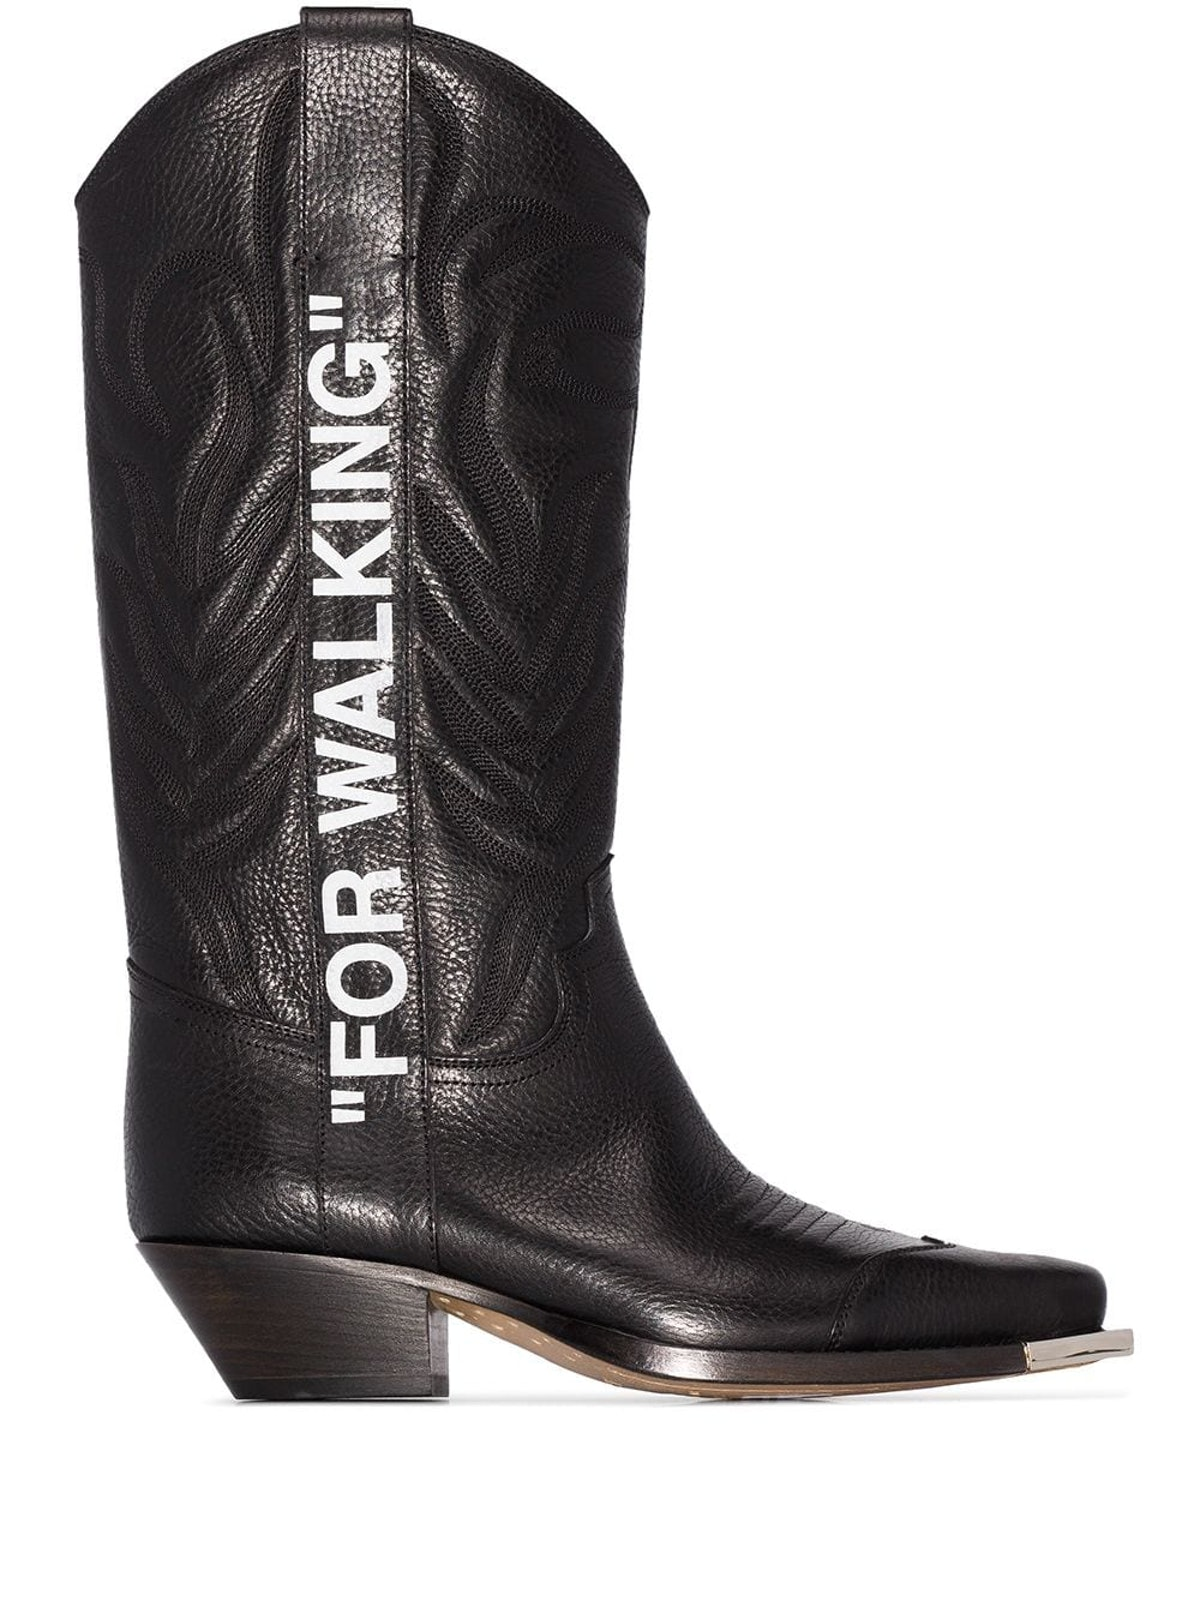 Off-White For Walking Cowboy Boots